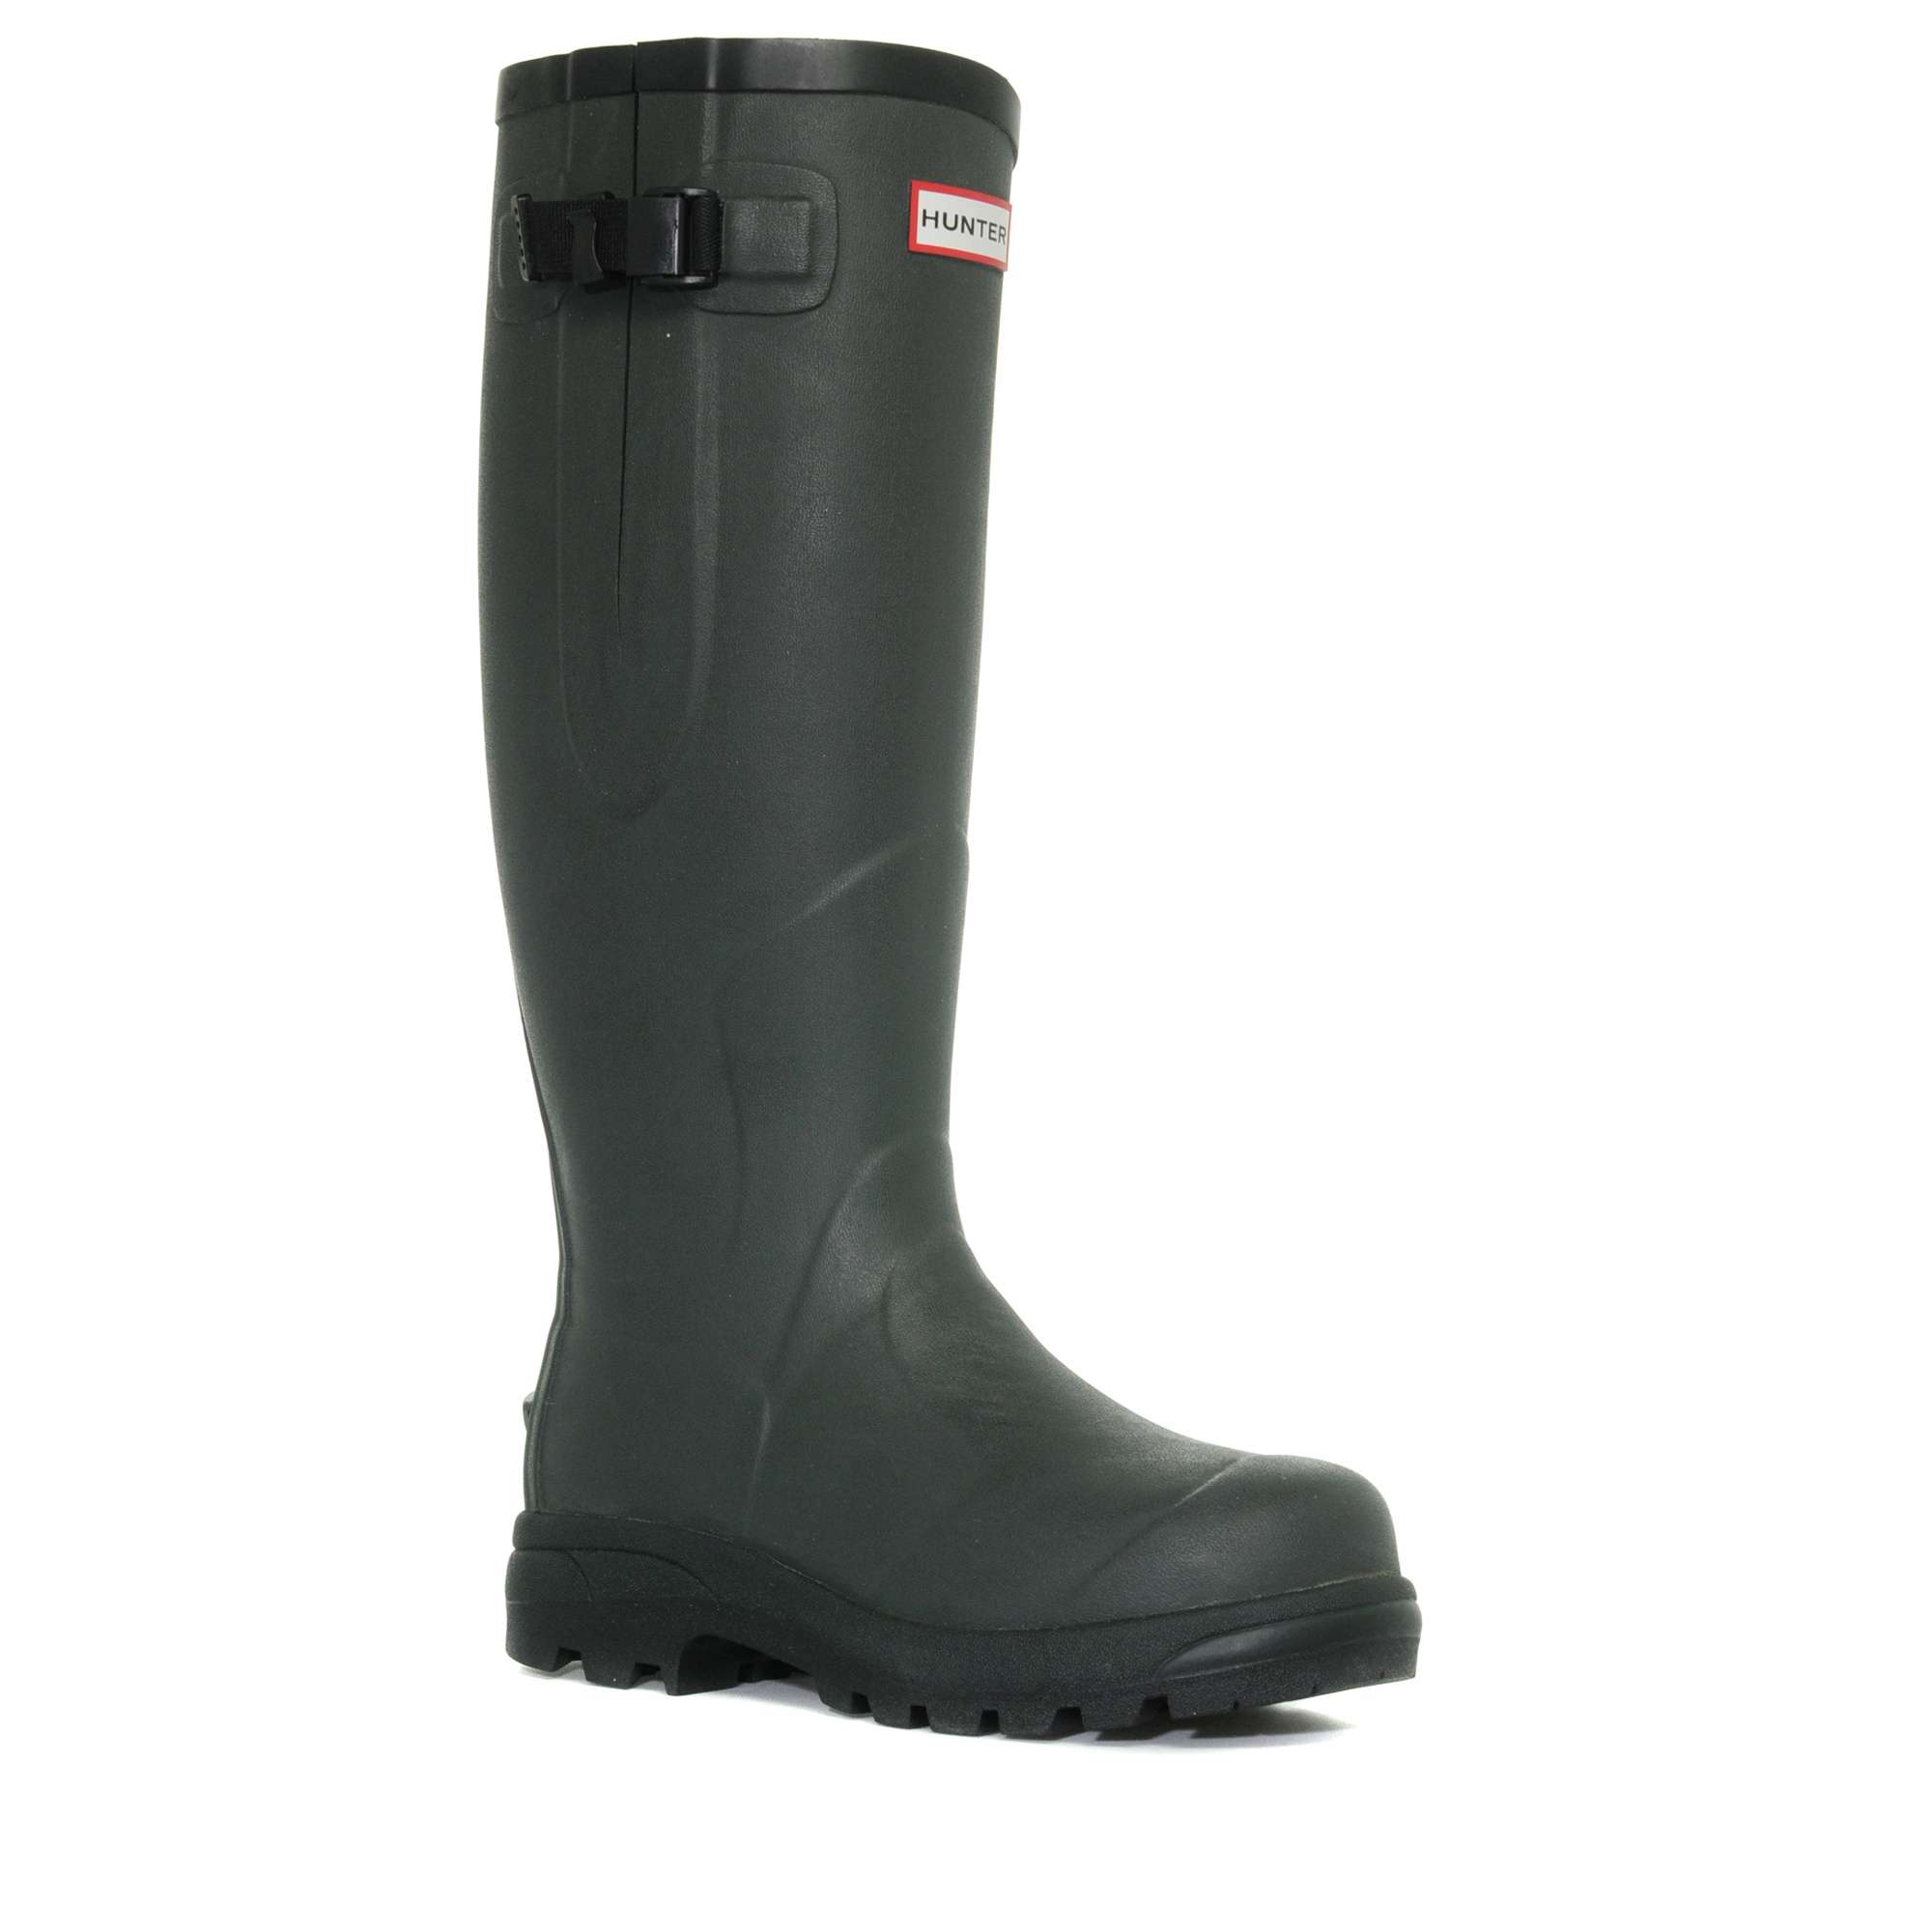 HUNTER Unisex Balmoral Classic Wellies